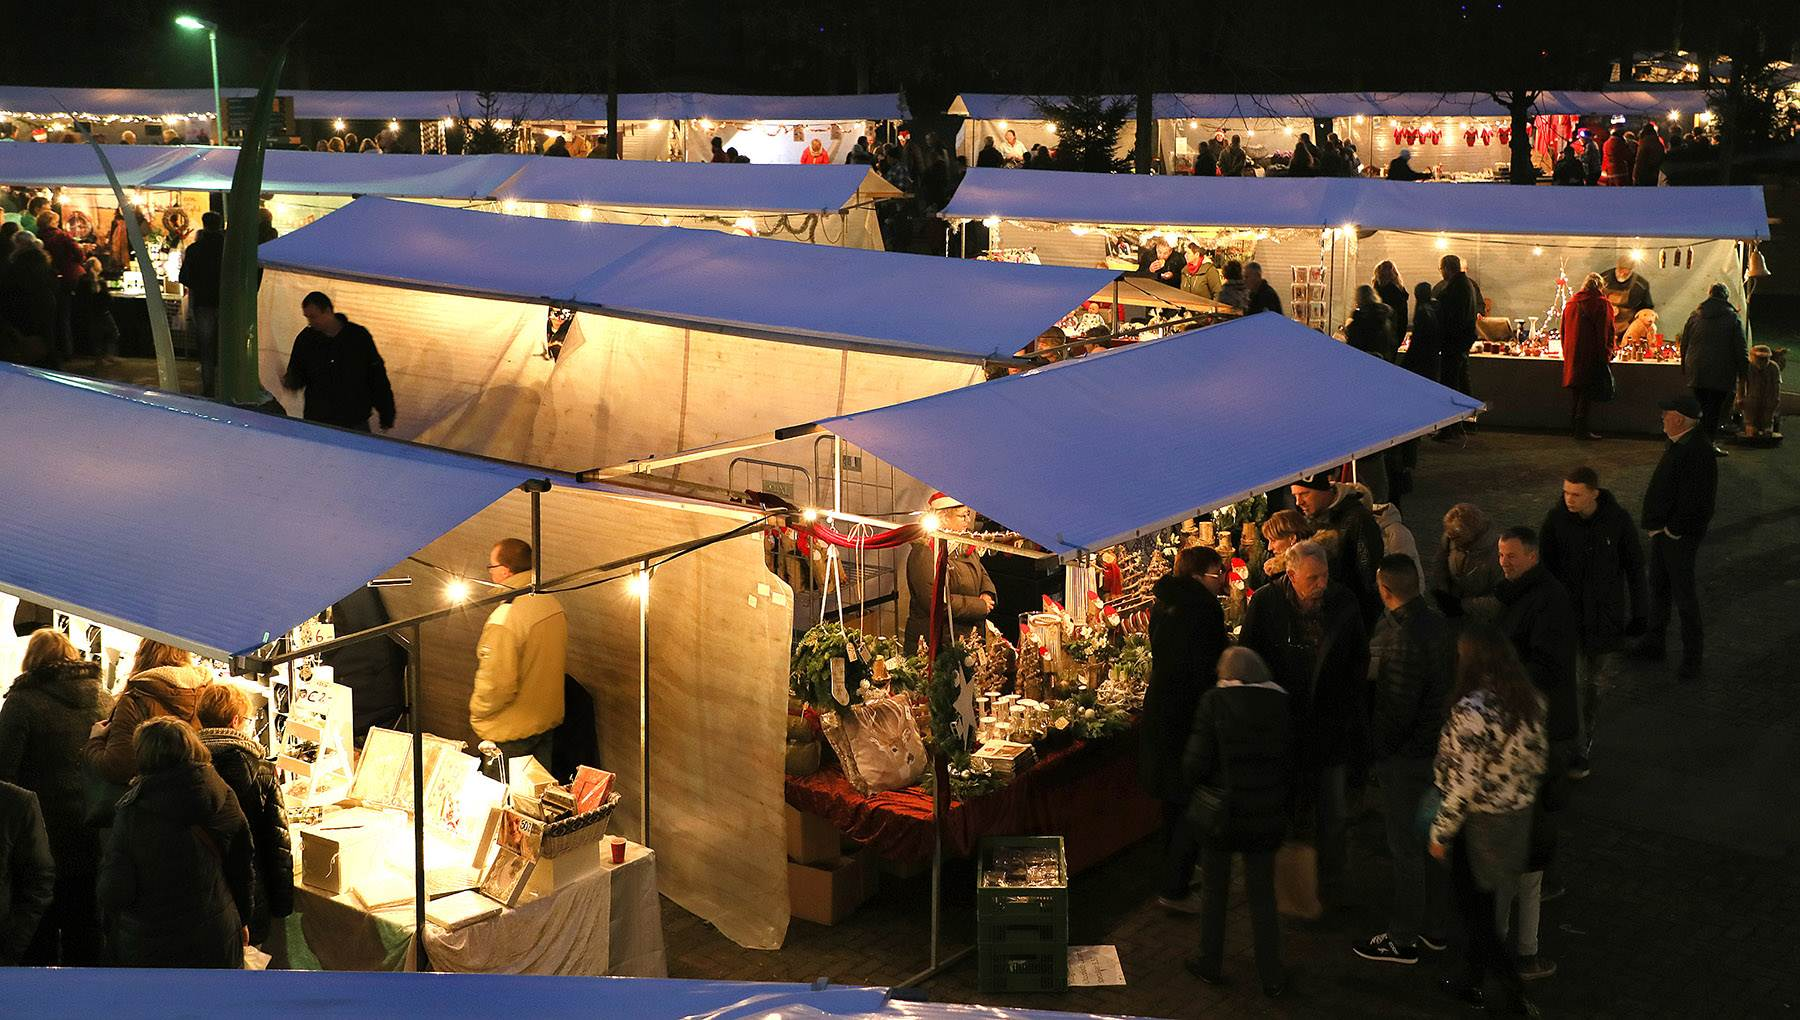 Sissy Boy Kerstmarkt 2018 Top 15 Christmas Markets In And Around Amsterdam For 2018 I